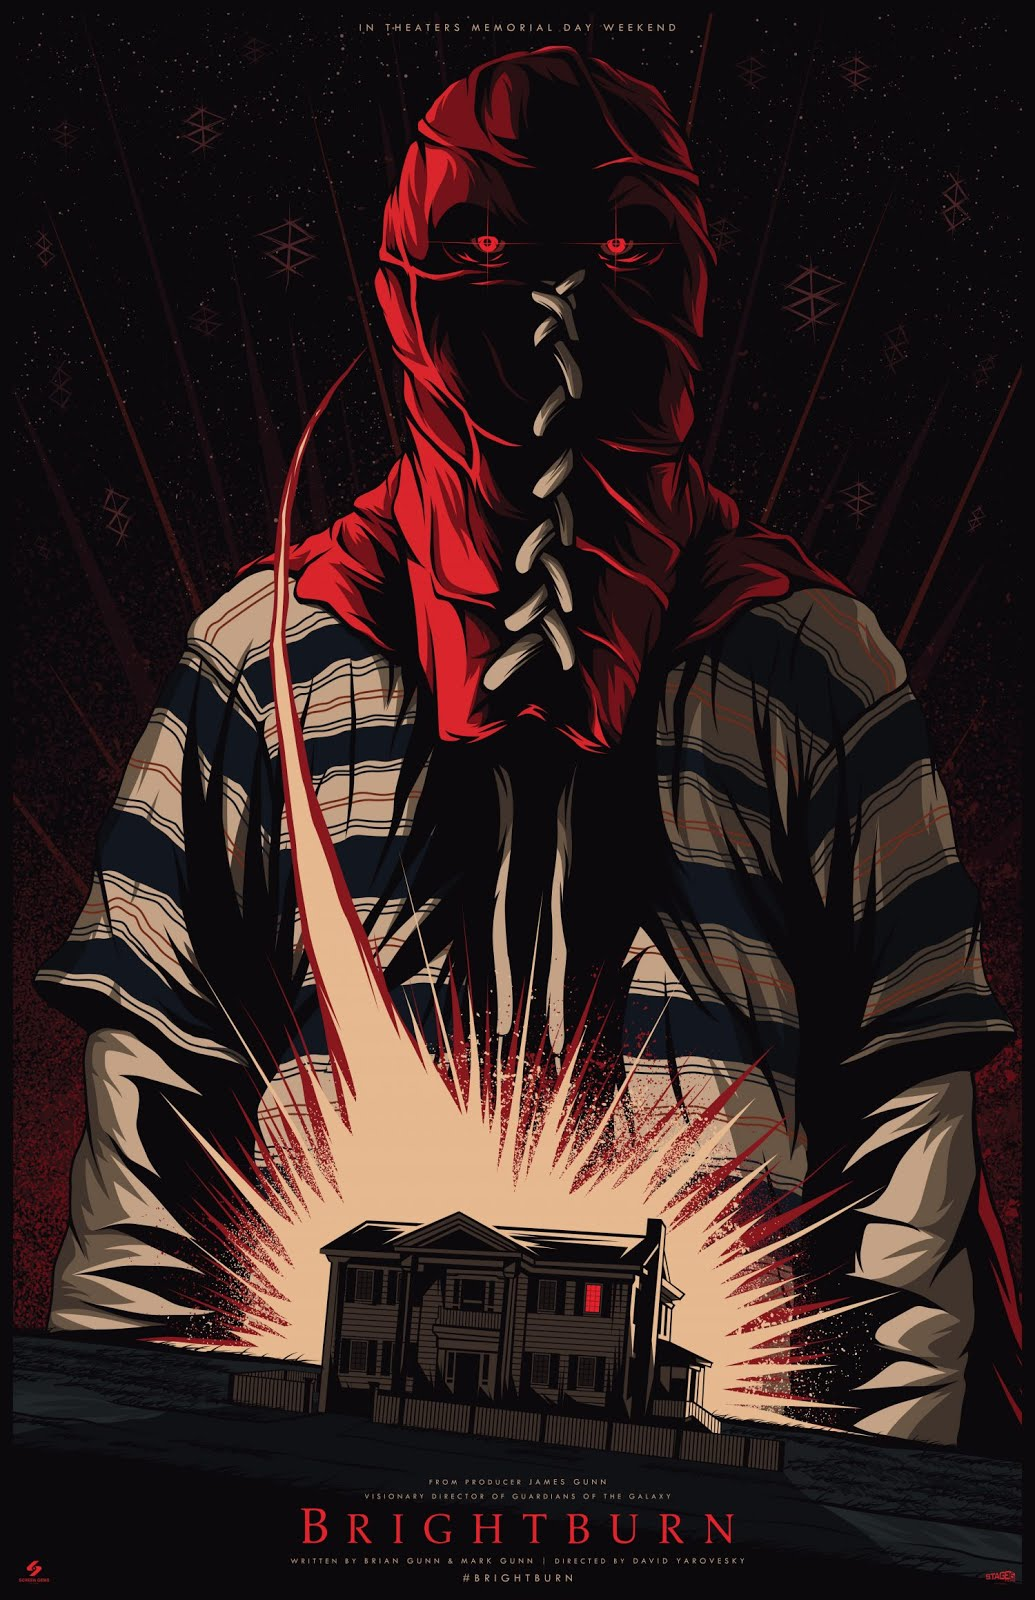 Brightburn (2019) English 720p HDCAM-Rip x264 850MB Free Download